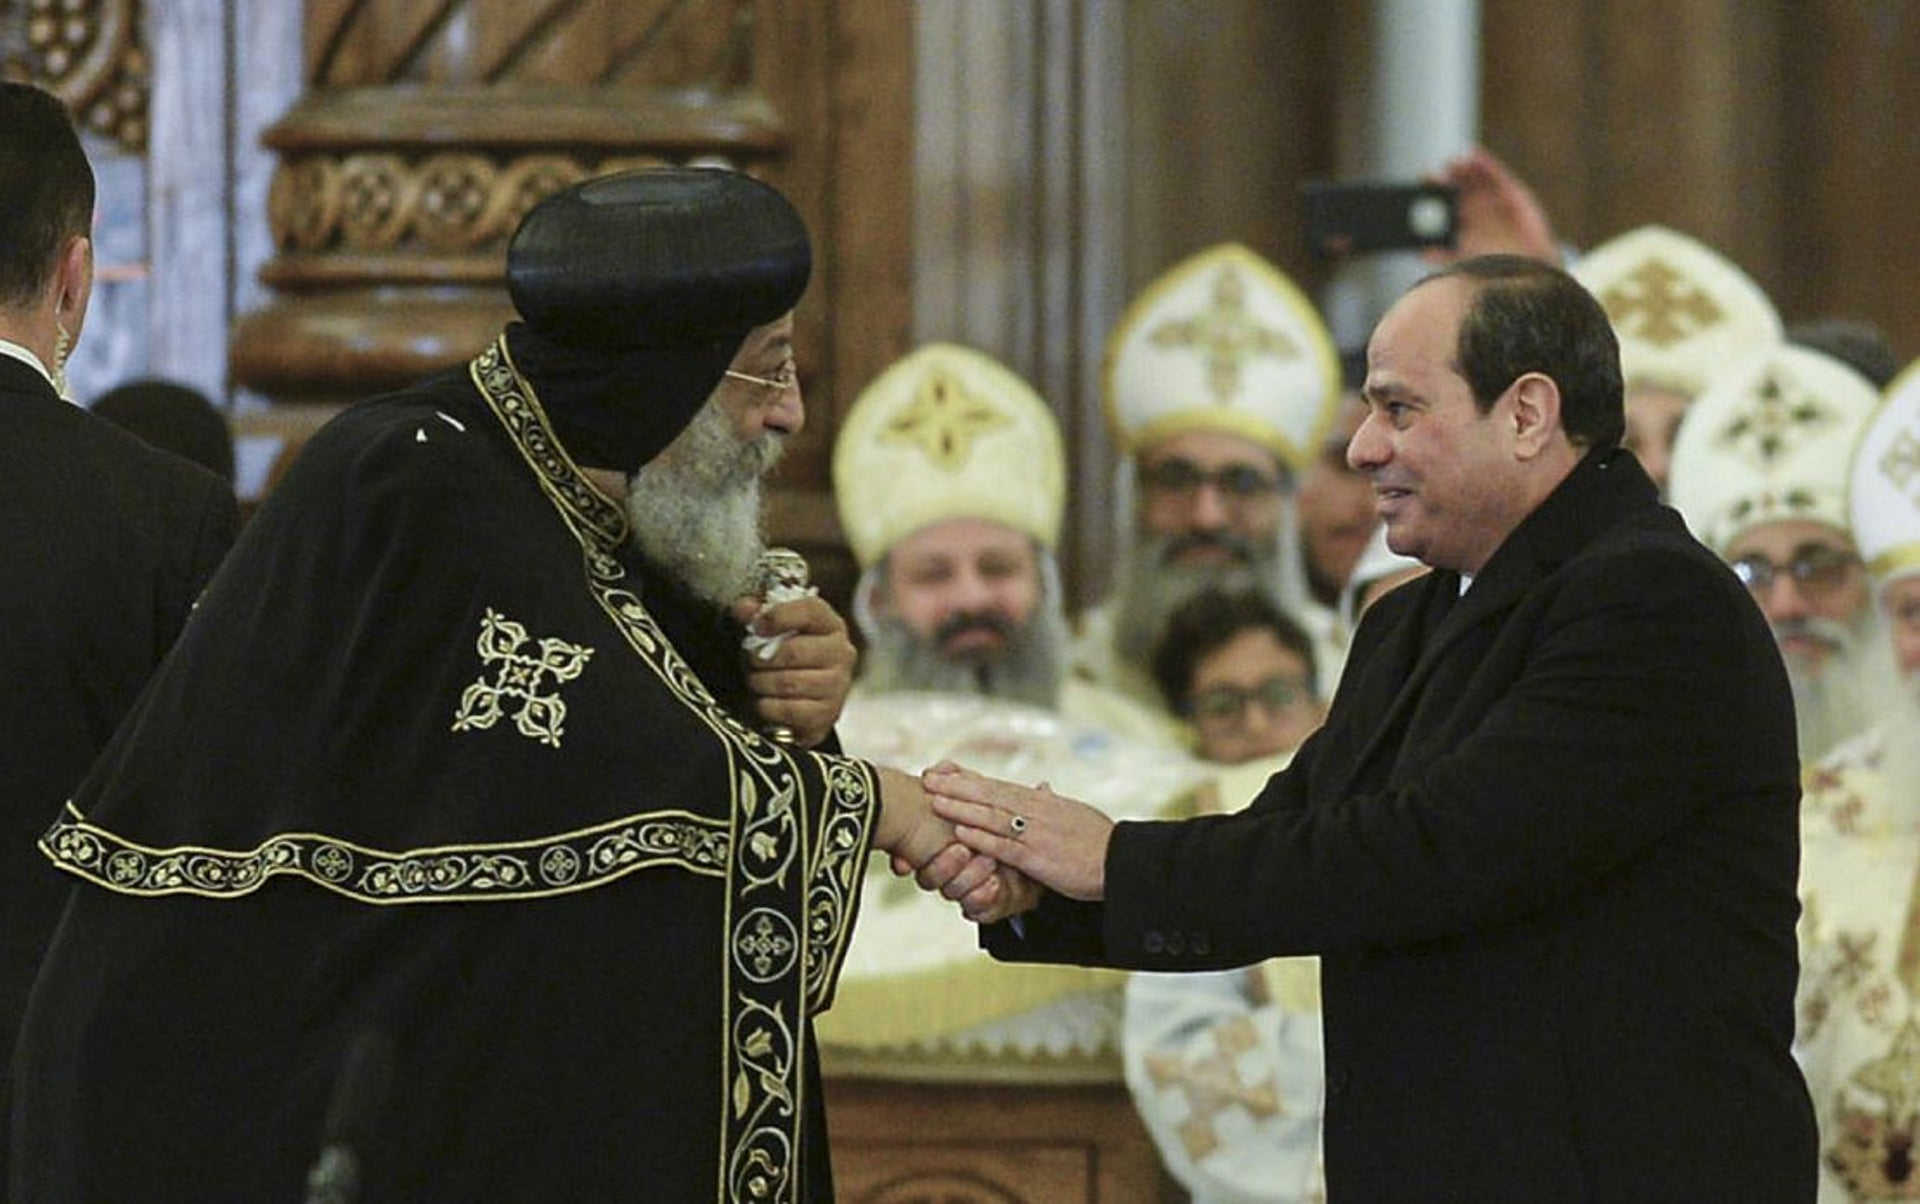 Egypt's President Abdel Fattah al-Sisi (R) speaks as Coptic Pope Tawadros II listens during the inauguration of the massive Cathedral of the Nativity of Christ in Egypt's New Administrative Capital, 45 kilometres (28 miles) East of Cairo, on January 6, 2019